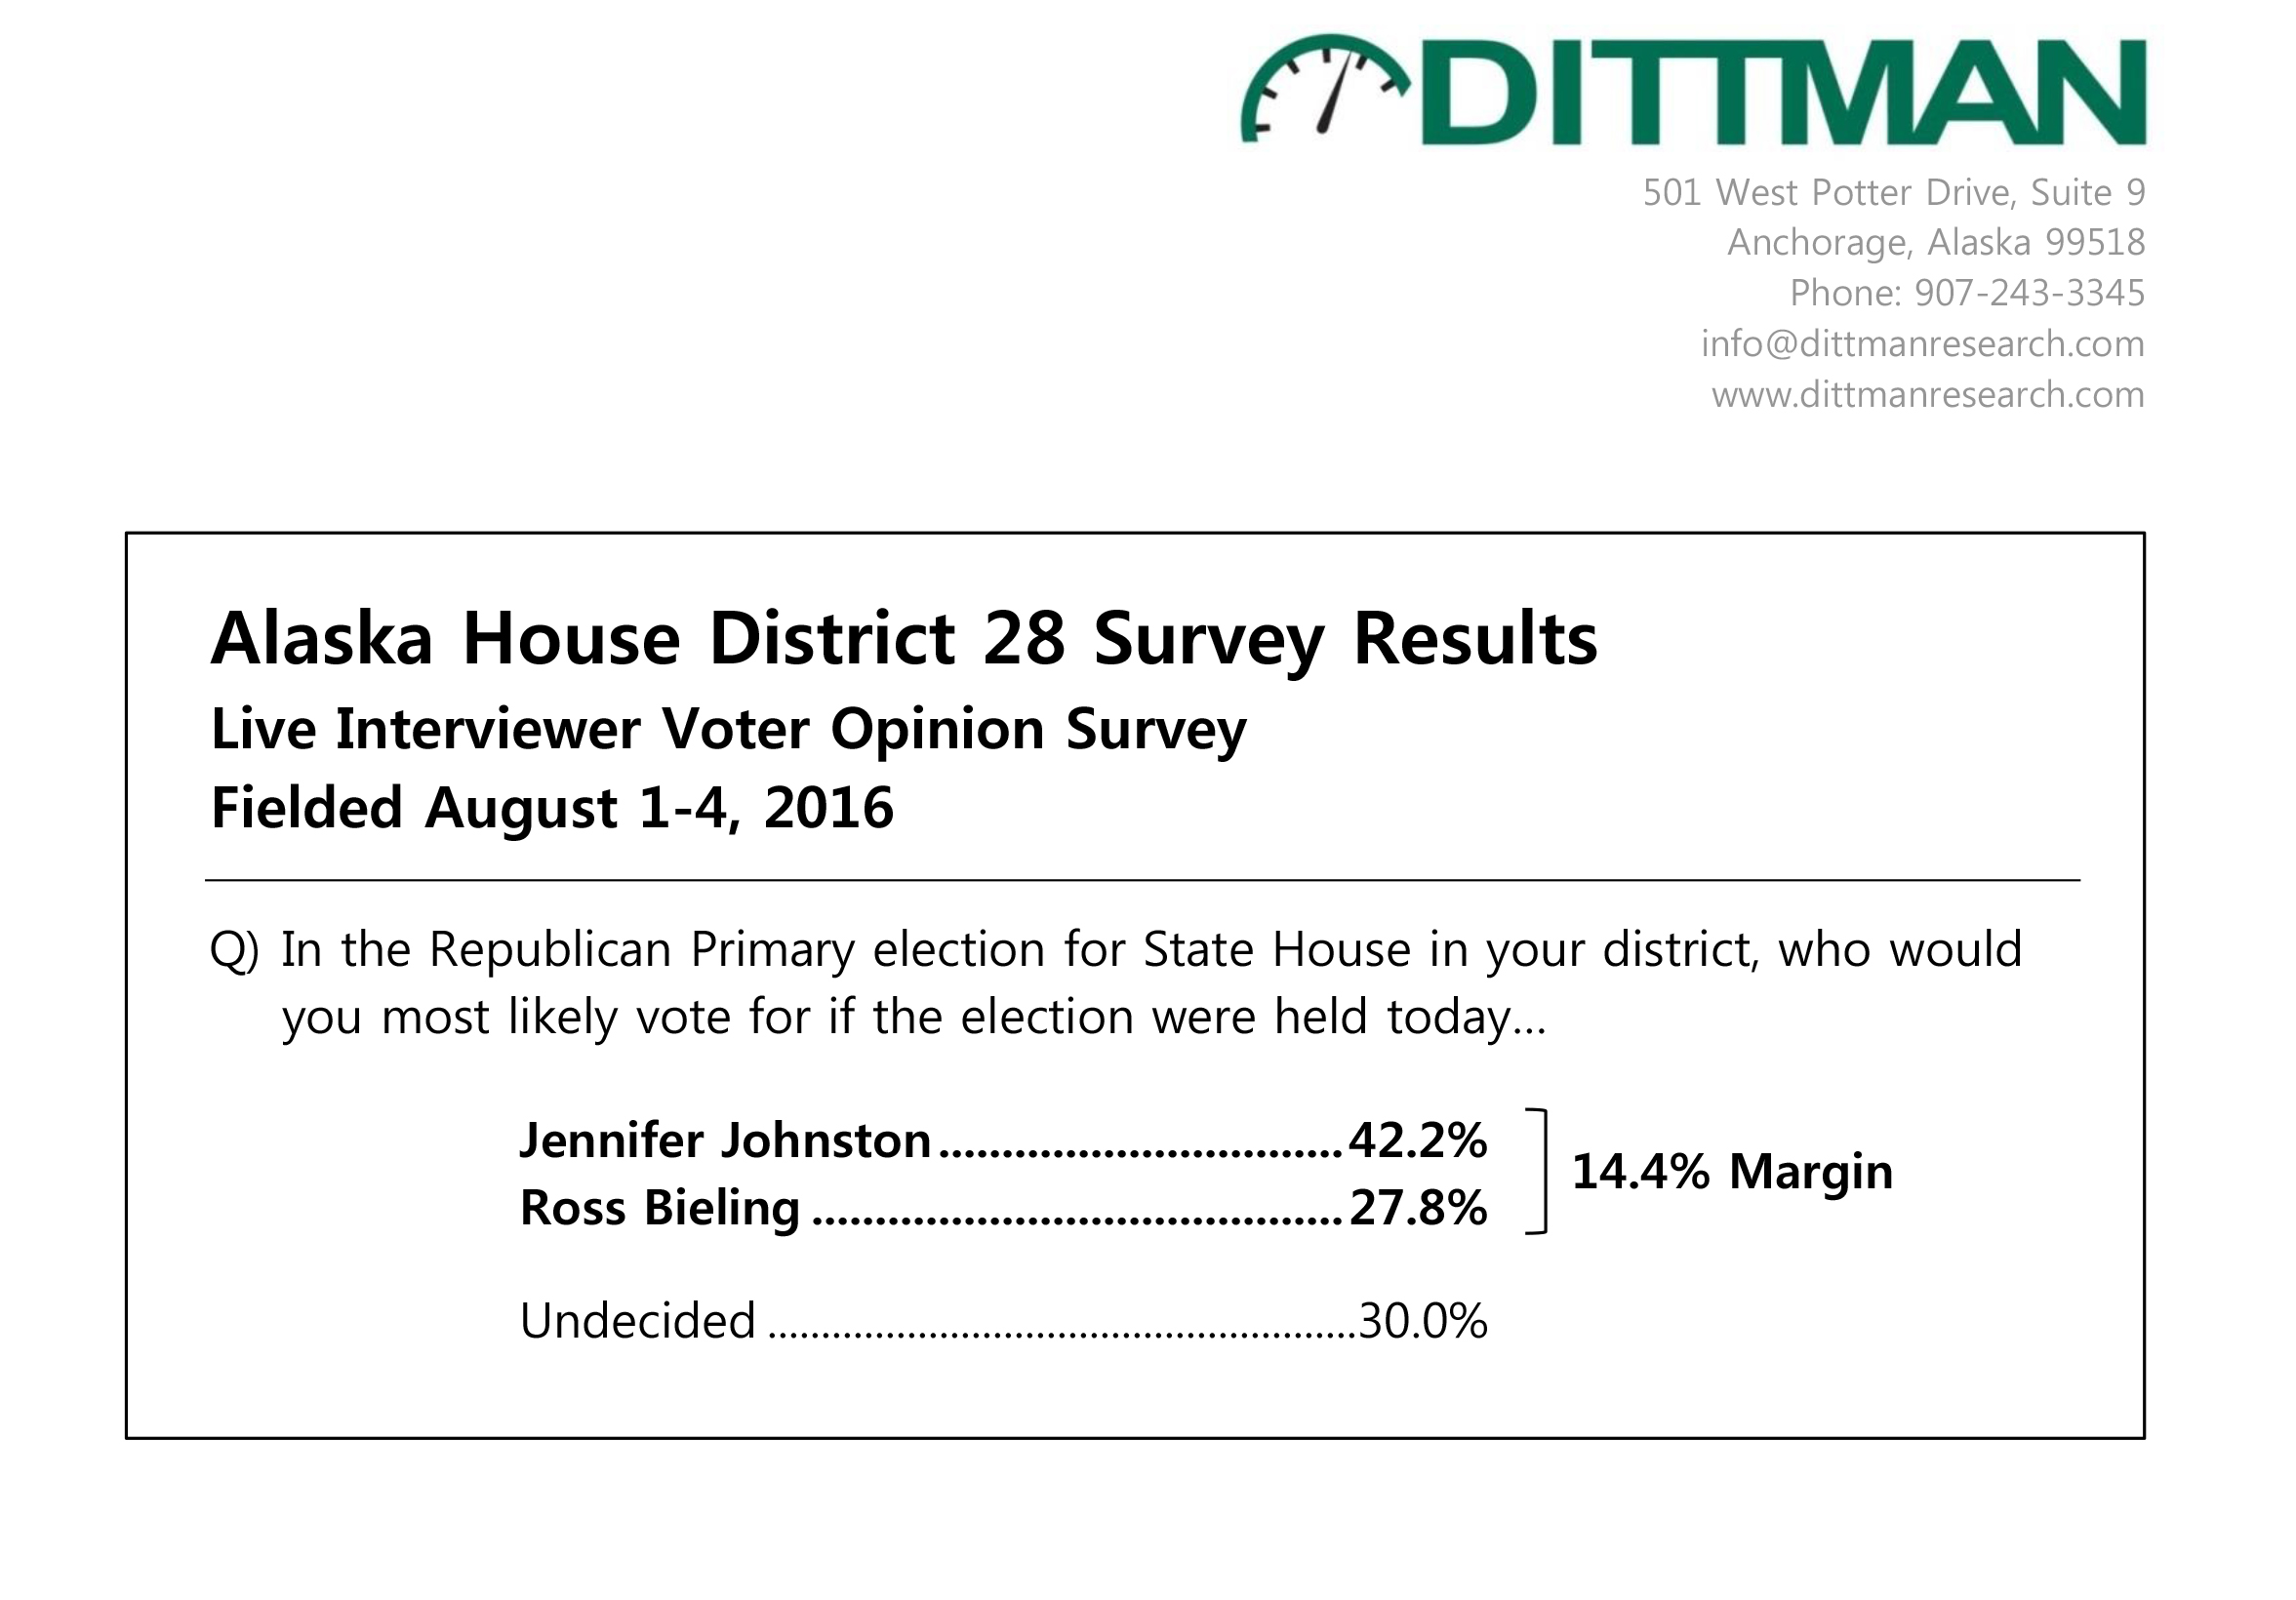 House District 28 Aug 1-4, 2016 Survey Results Summary